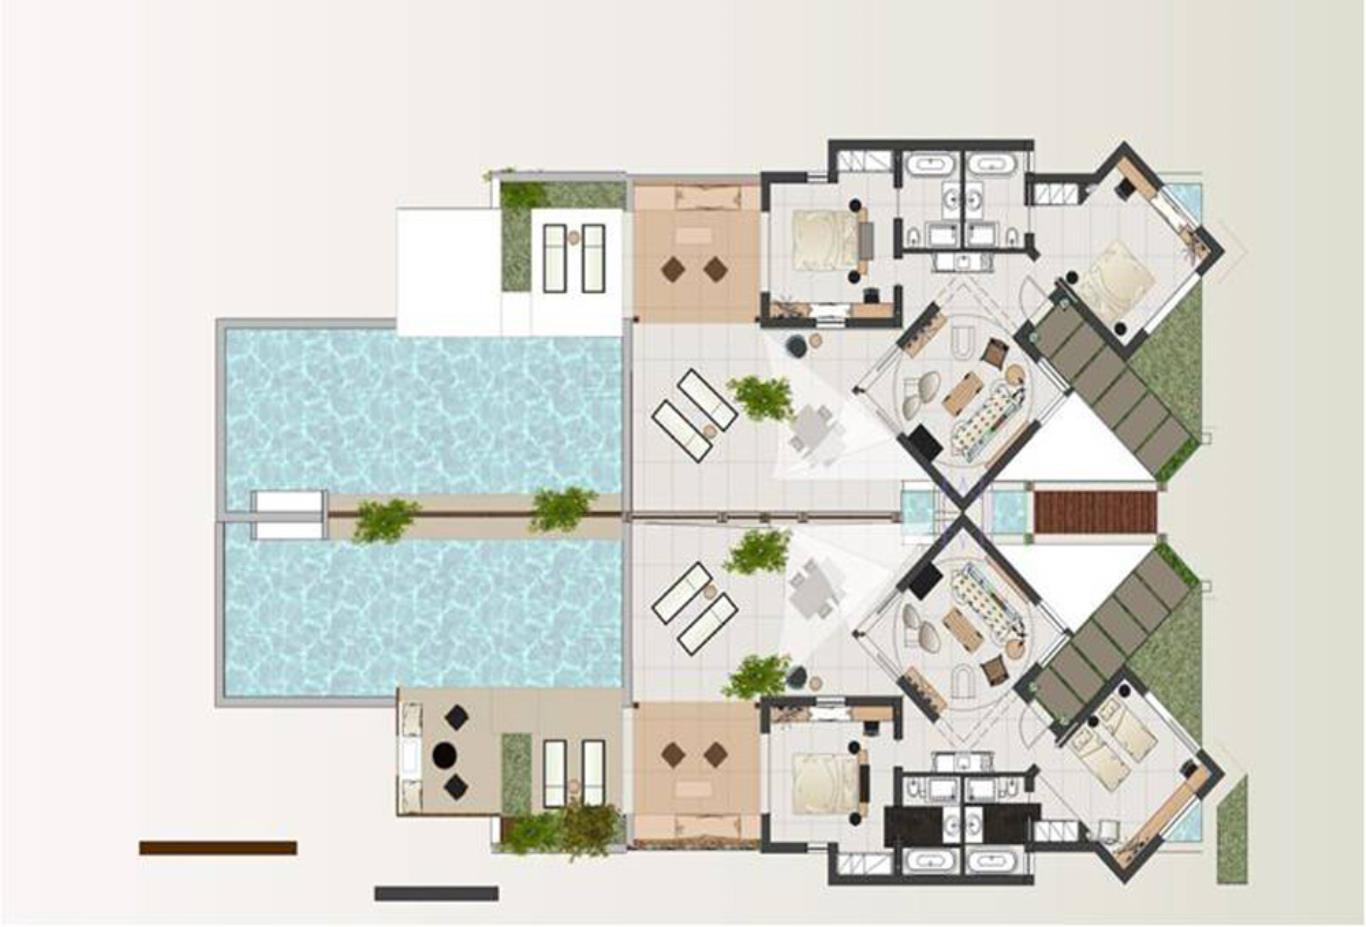 Luxury Residence floorplan